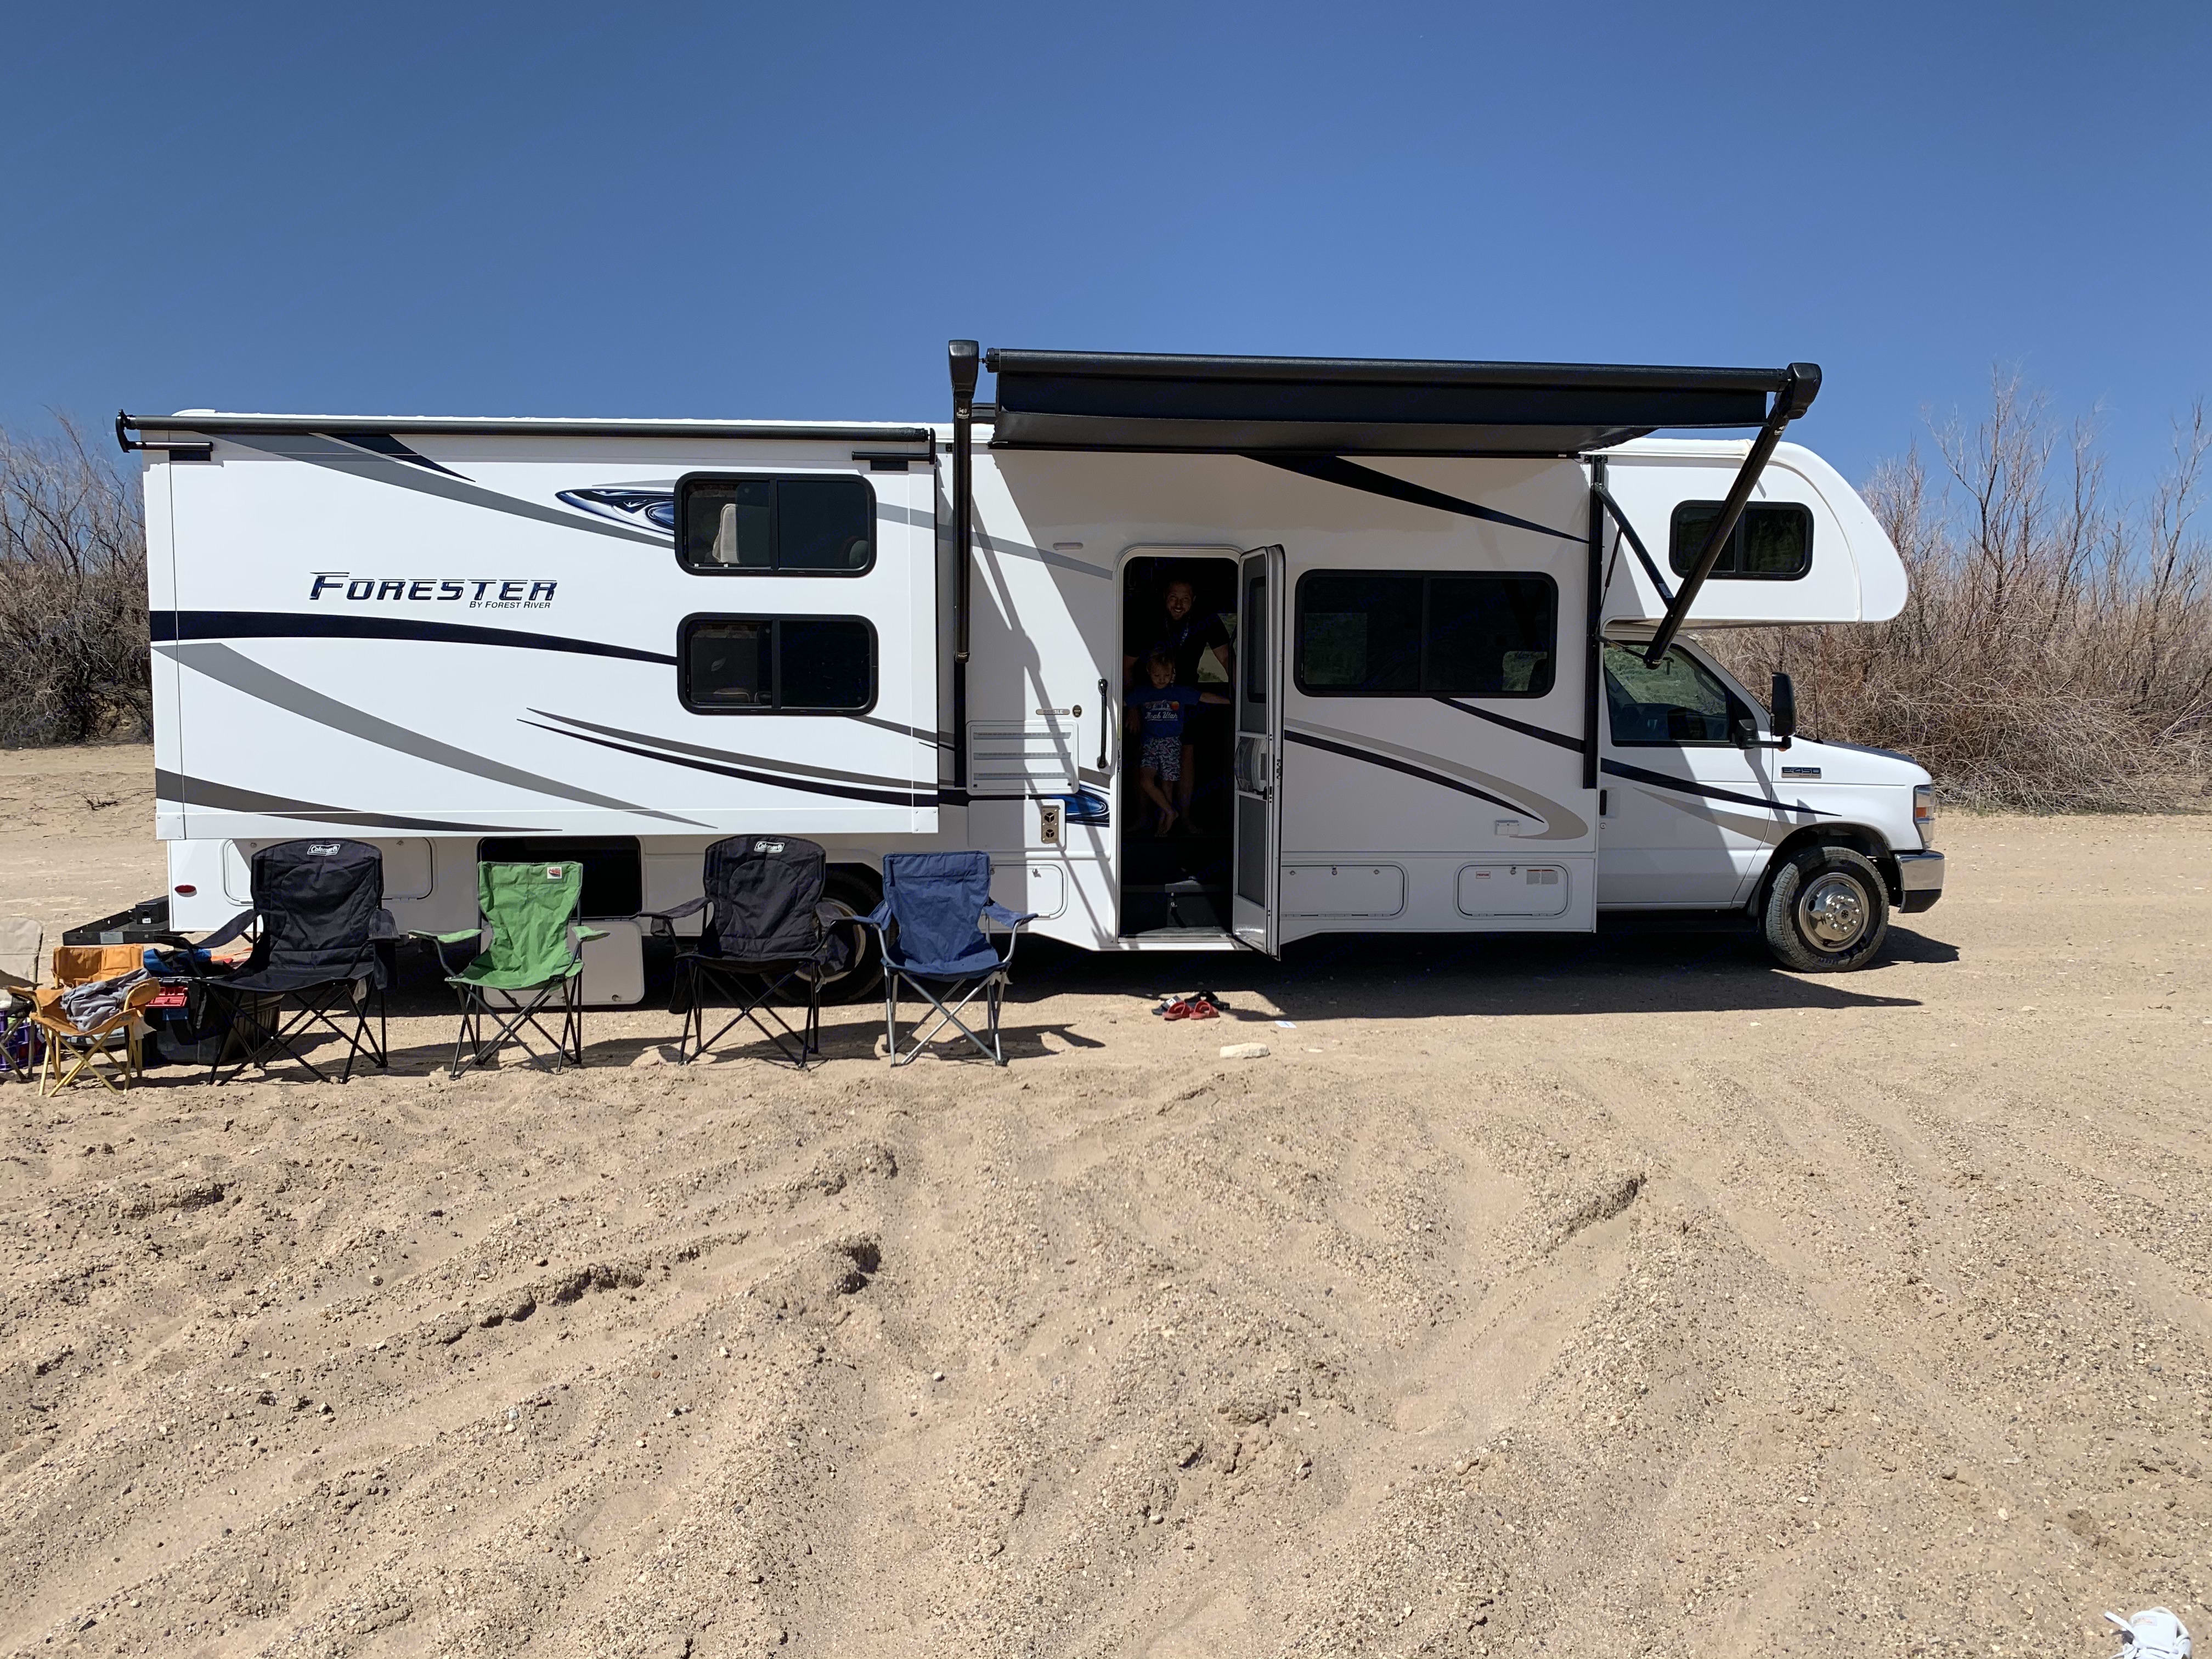 Parked at Swim Beach, Flaming Gorge.. Forest River Forester 2020